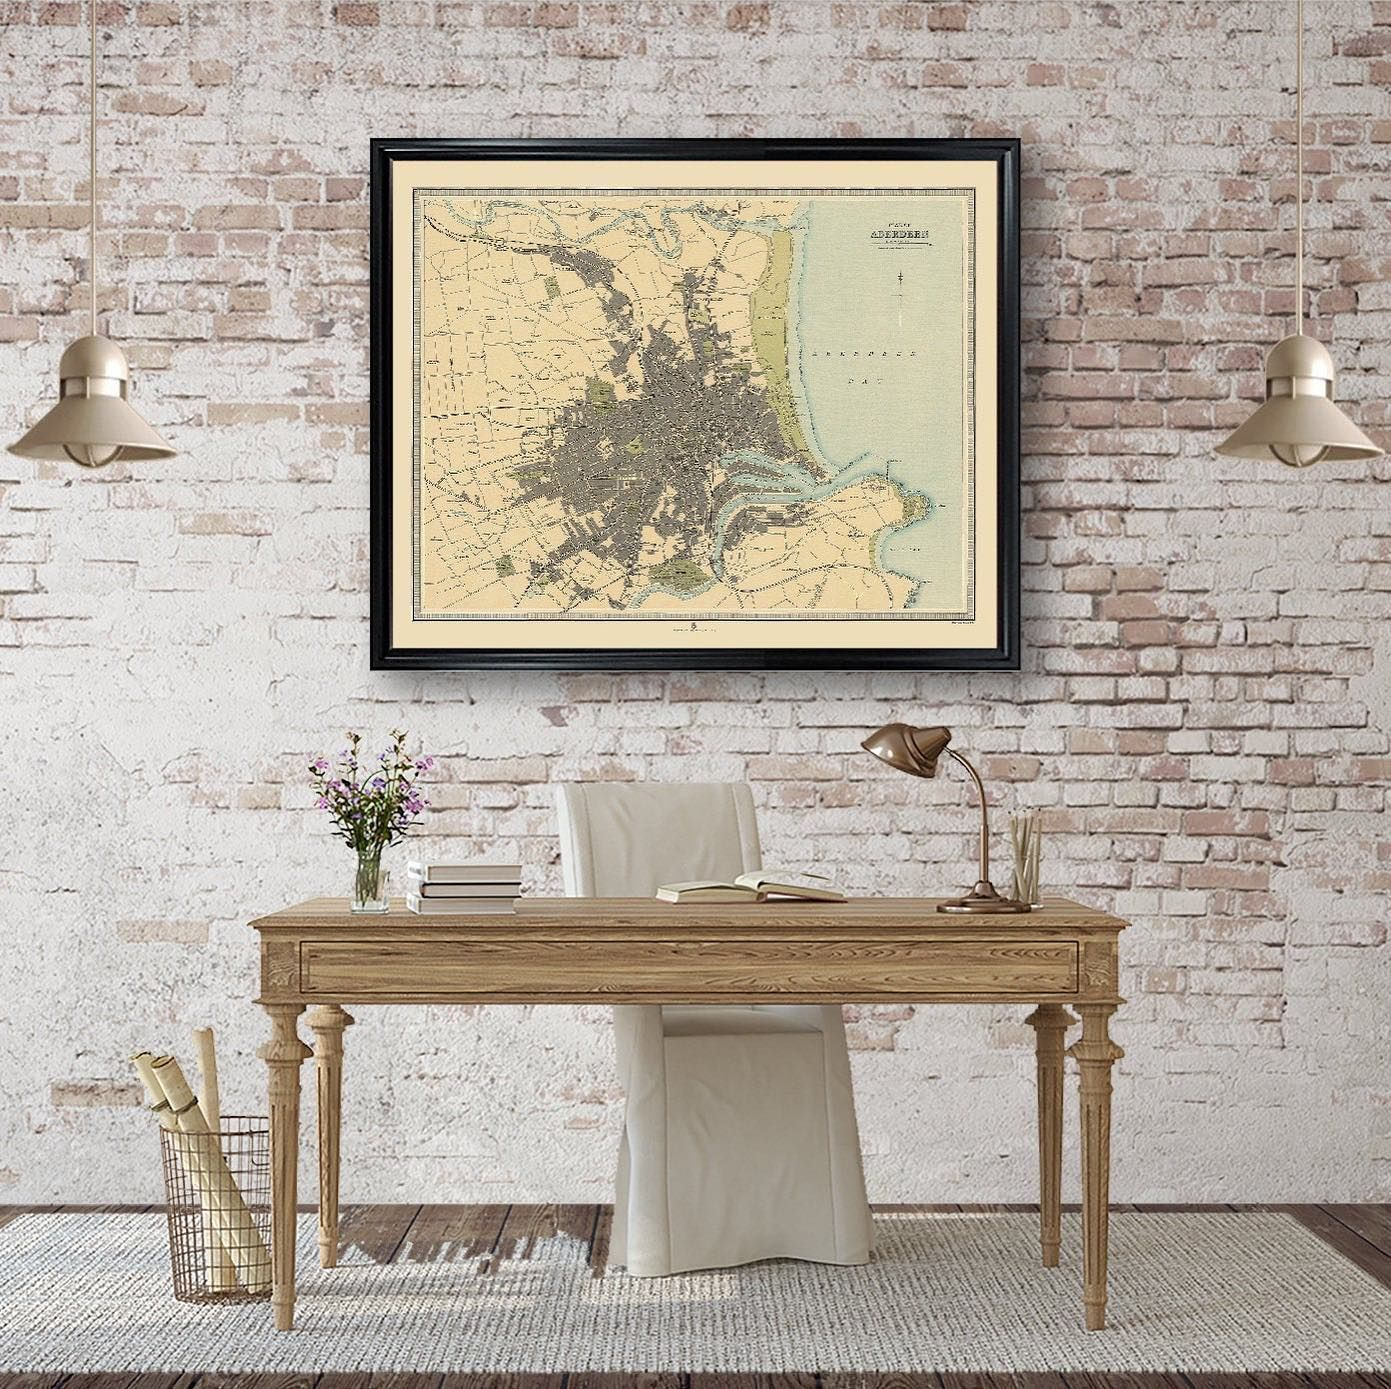 Map of Aberdeen Poster Print Vintage Wall Decor City Map of Scotland  #MapofAberdeen #FarmhouseDecor #CountryhomeDecor #PosterMap  #HighResolutionMap #VintageArt #VintageWallDecor #MapOnPaper  #VintageMap #CityMap #AntiqueMaps #MapArt #RusticDecor #FarmhouseDecor #AntiqueFarmhouse  #vintagehomedecor #countryhomedecor #vintagehome #loftdecorations #etsyshop #etsy #instahome #melrosetradingpost  #standwithsmall  #outfy @outfyinc